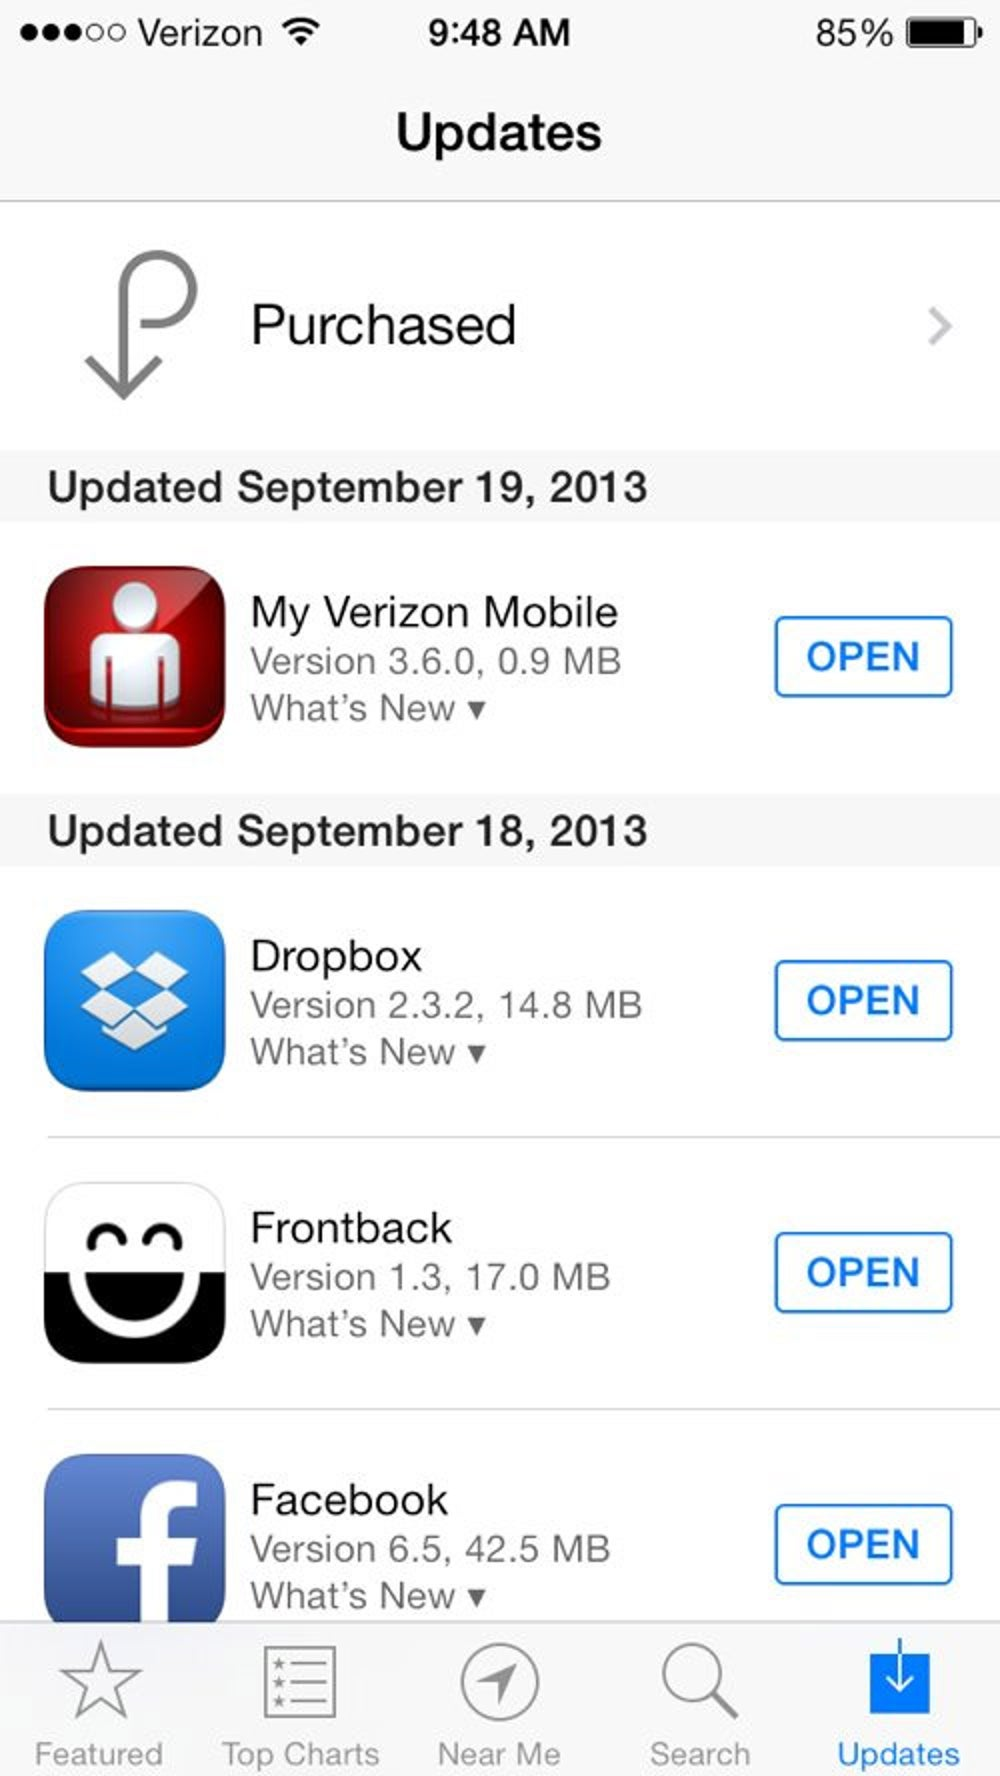 If you open up the App Store and tap the Updates tab, you get a quick snapshot of recently updated apps on your phone.